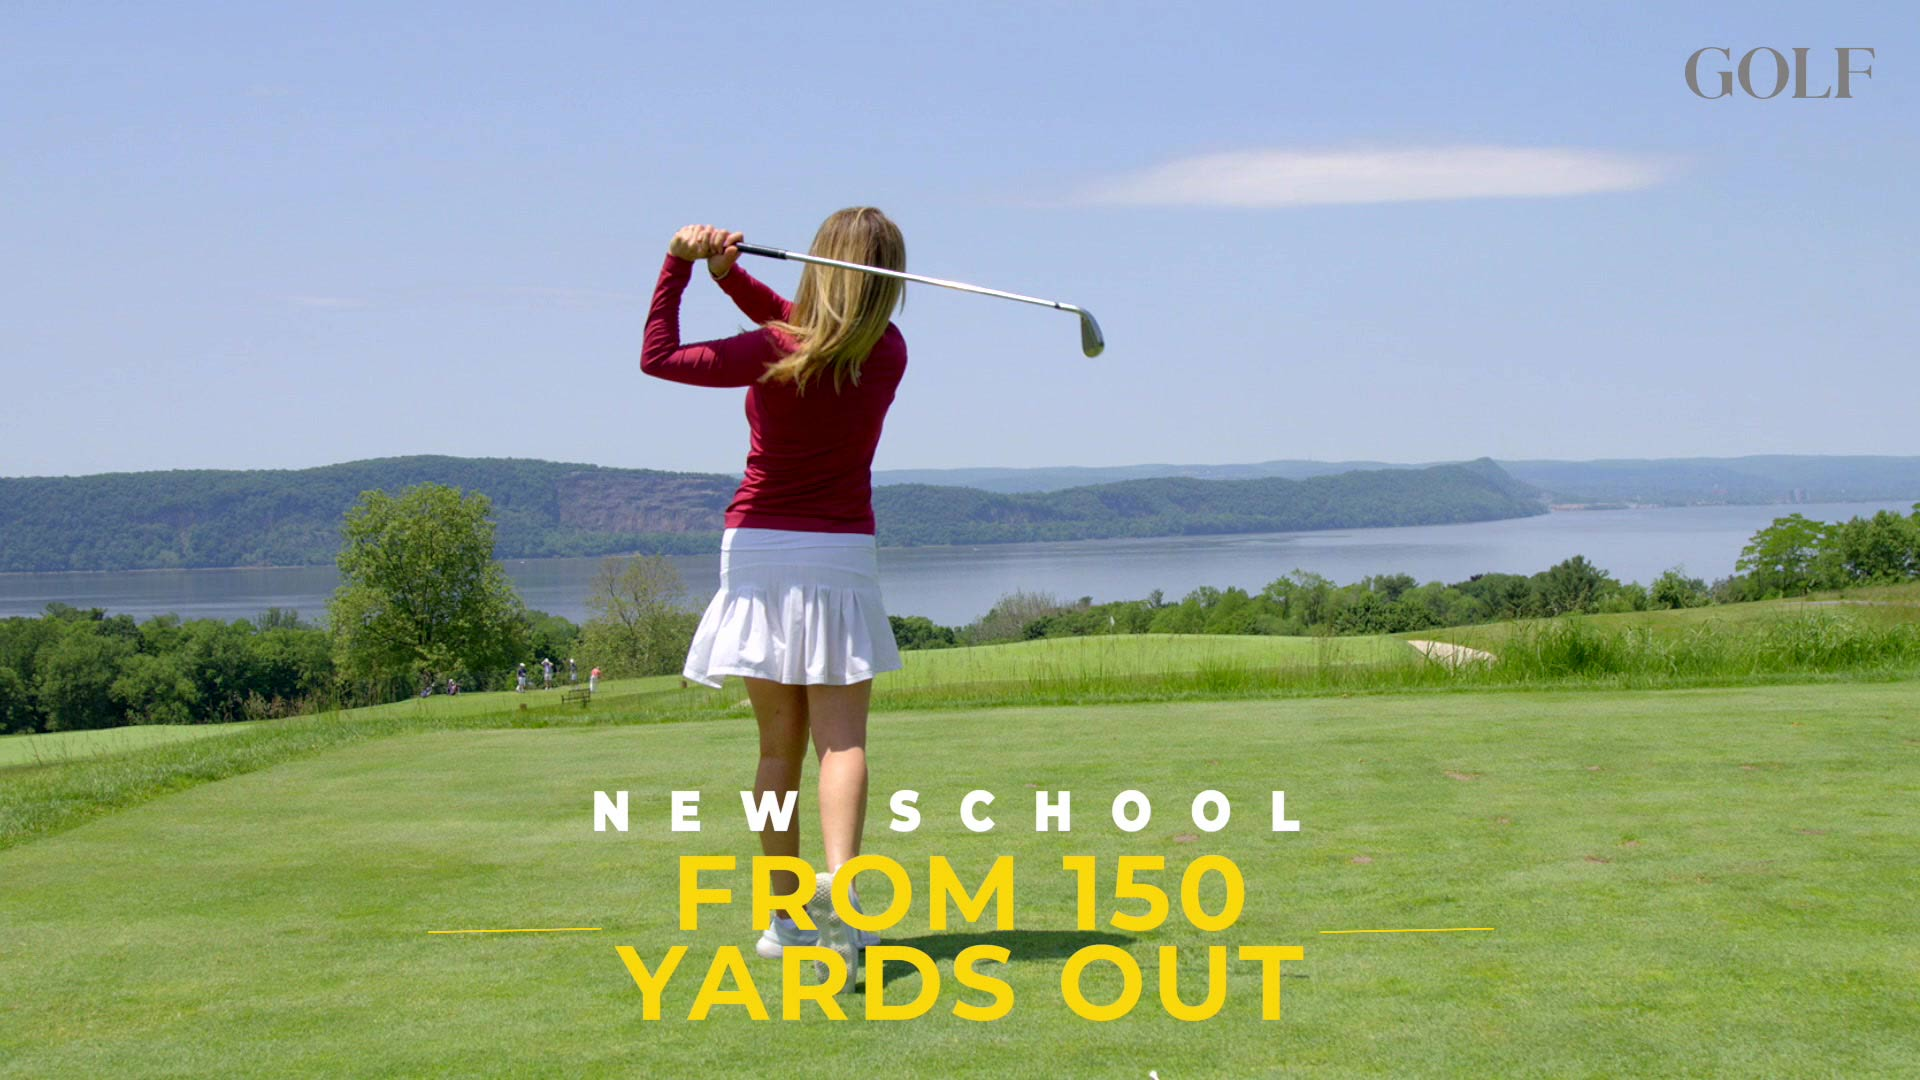 New School: From 150 Yards Out